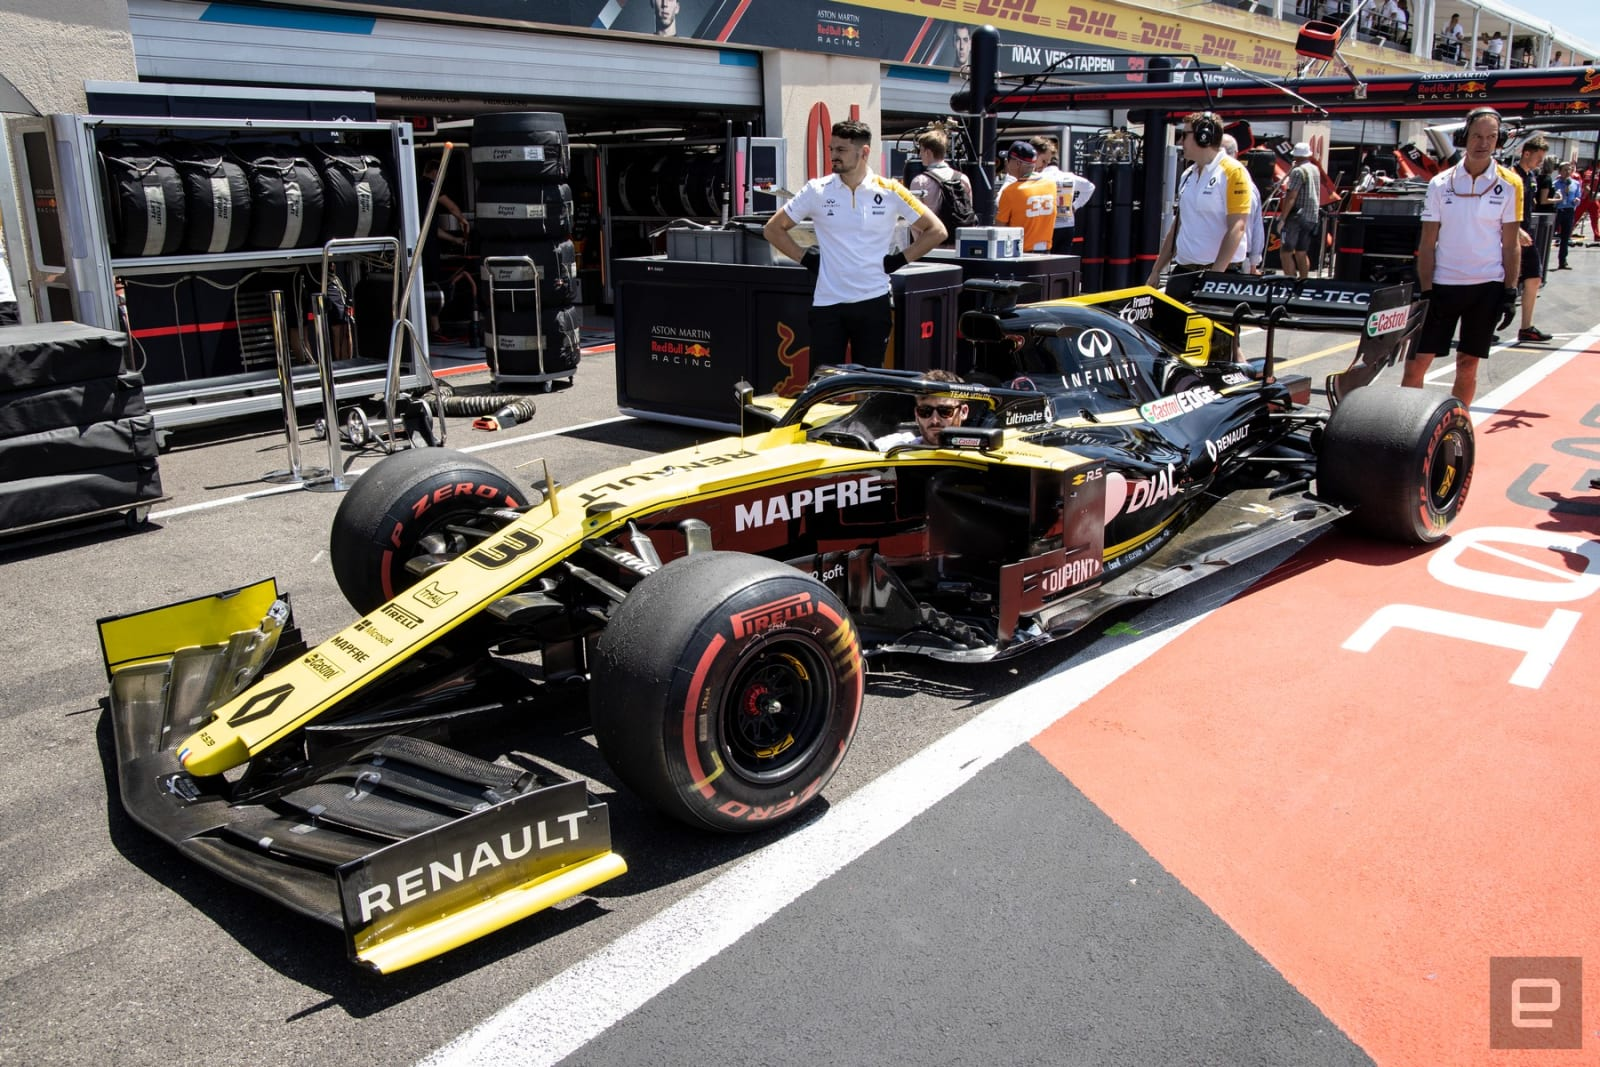 Renault Formula 1 more money more problems